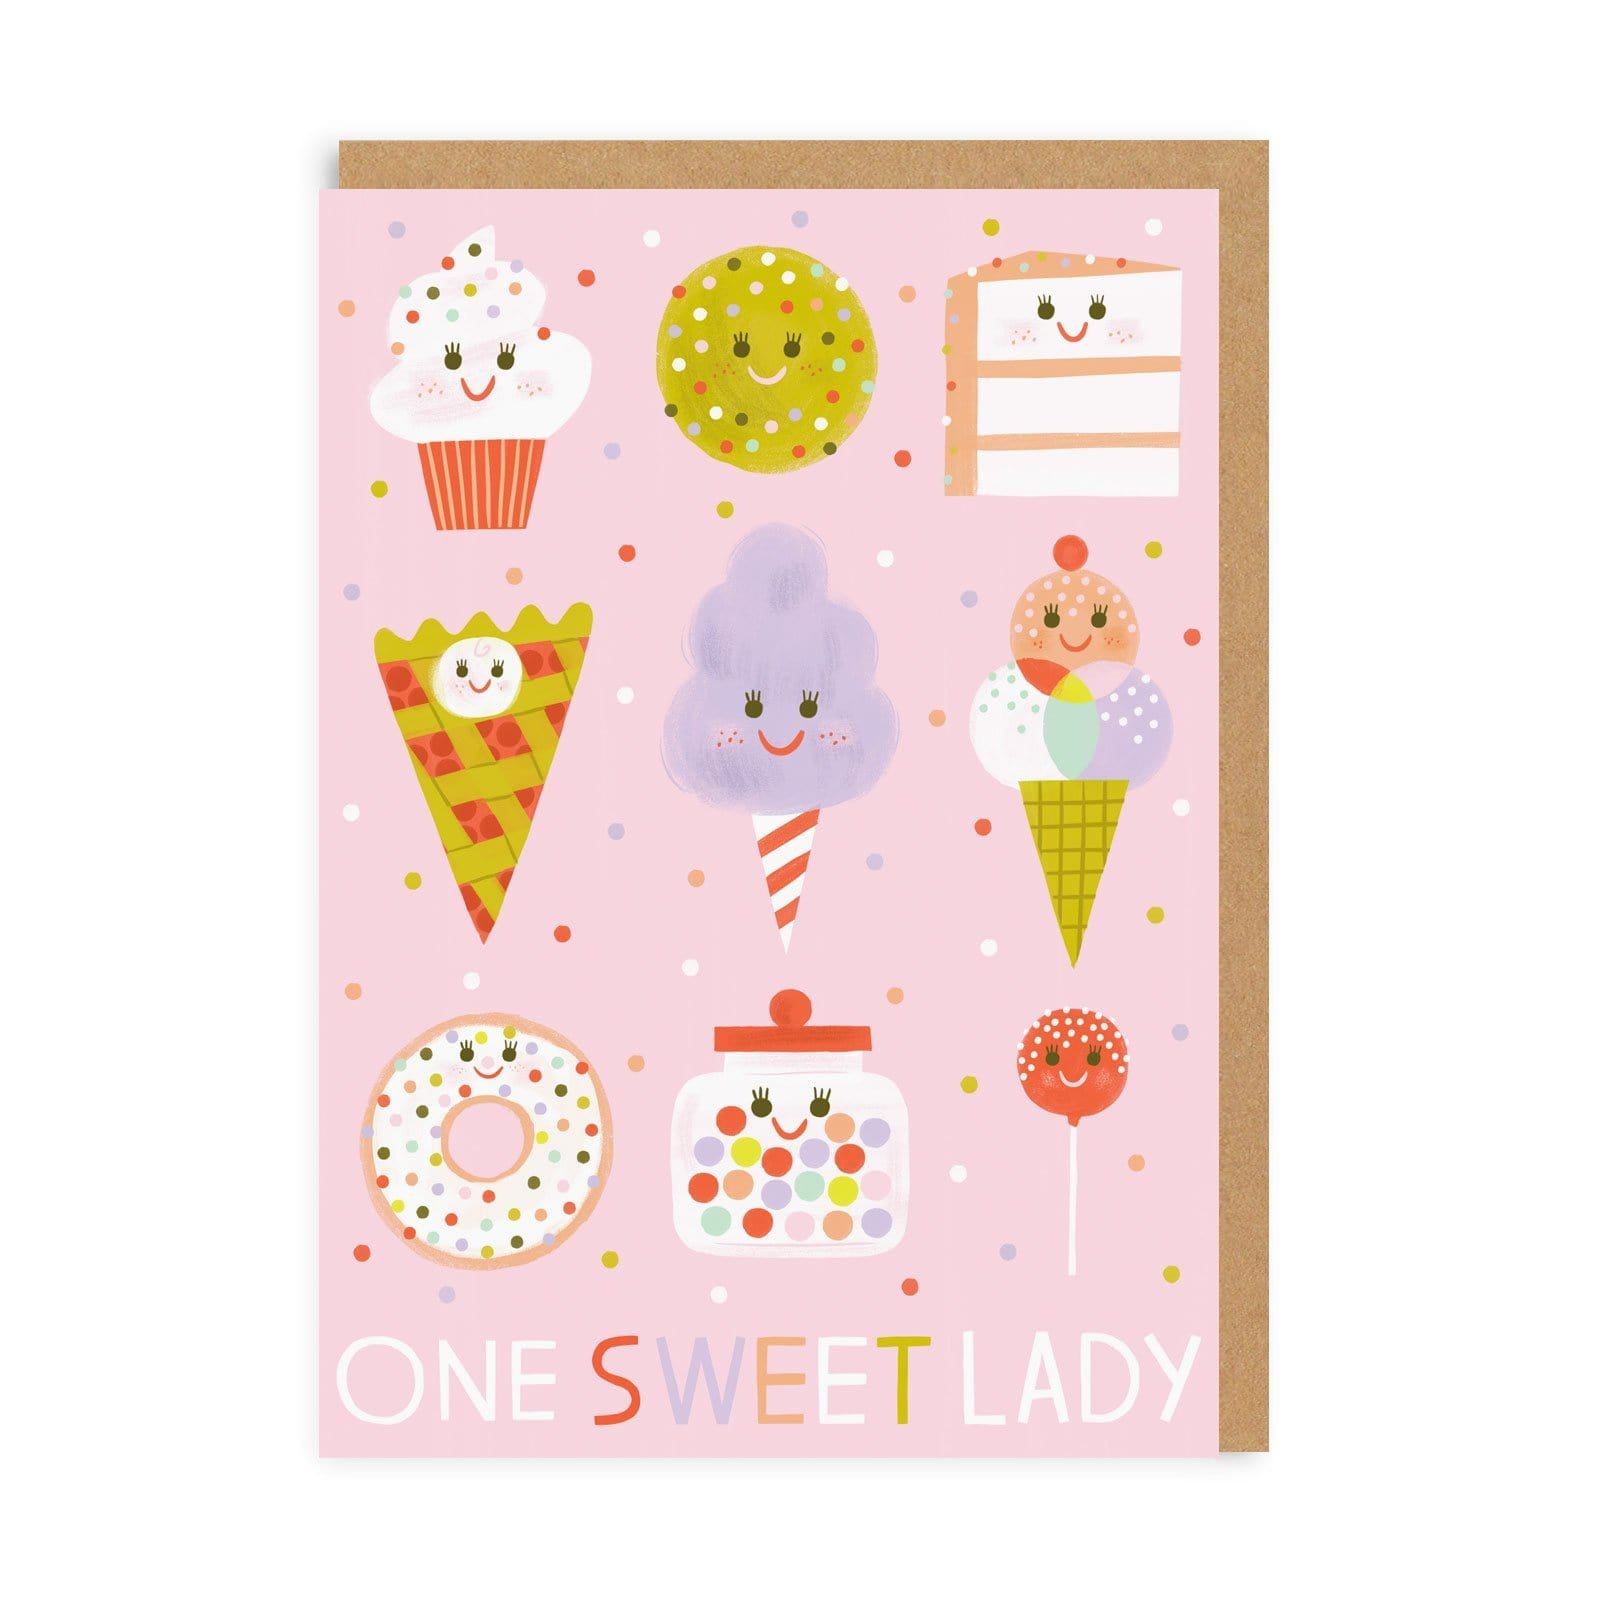 One Sweet Lady Greeting Card